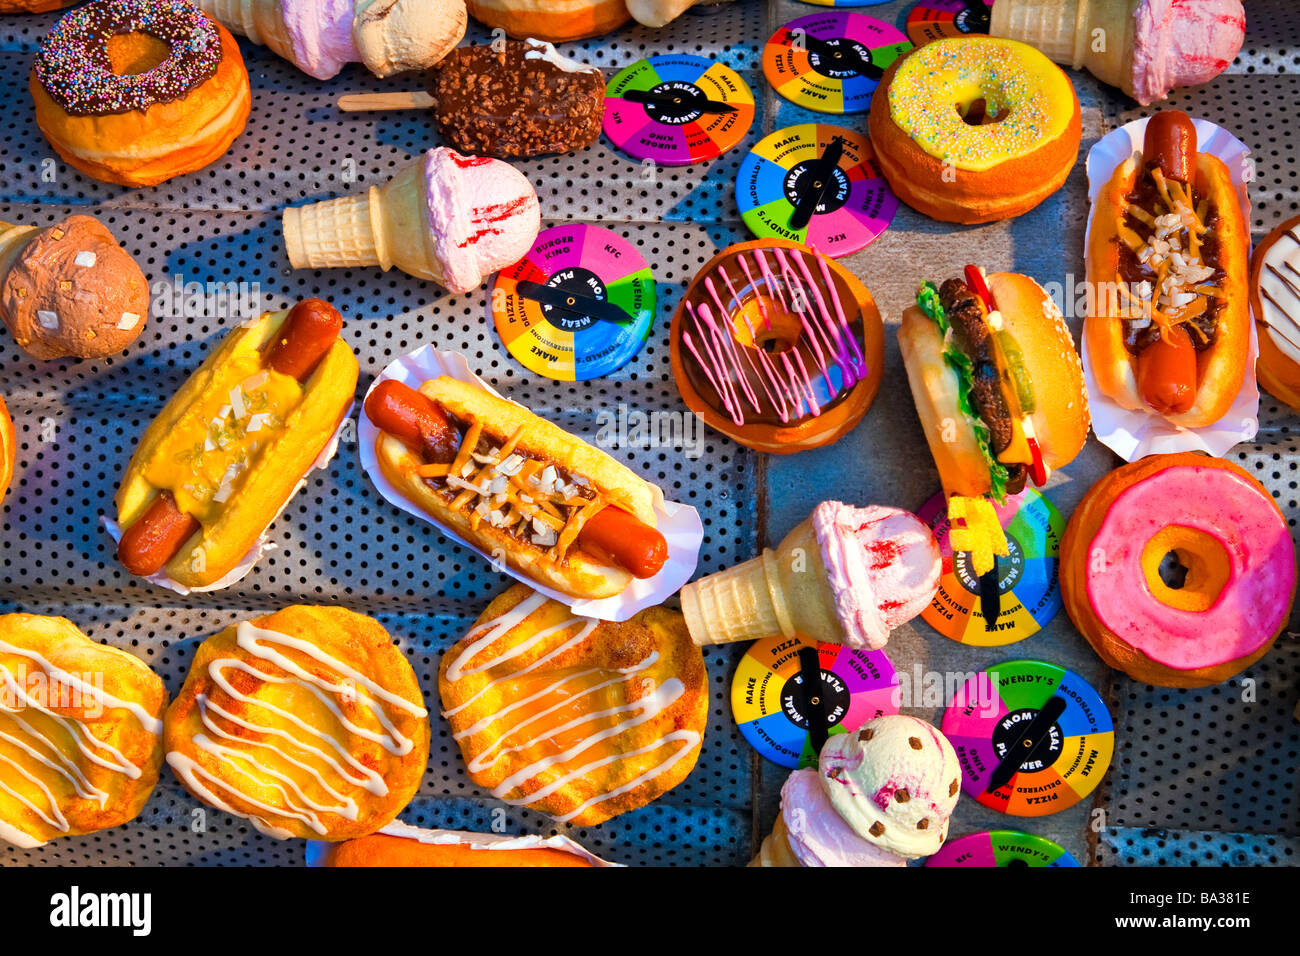 Unhealthy Food Or Junk Food Or Fast Food Like Stock Photo